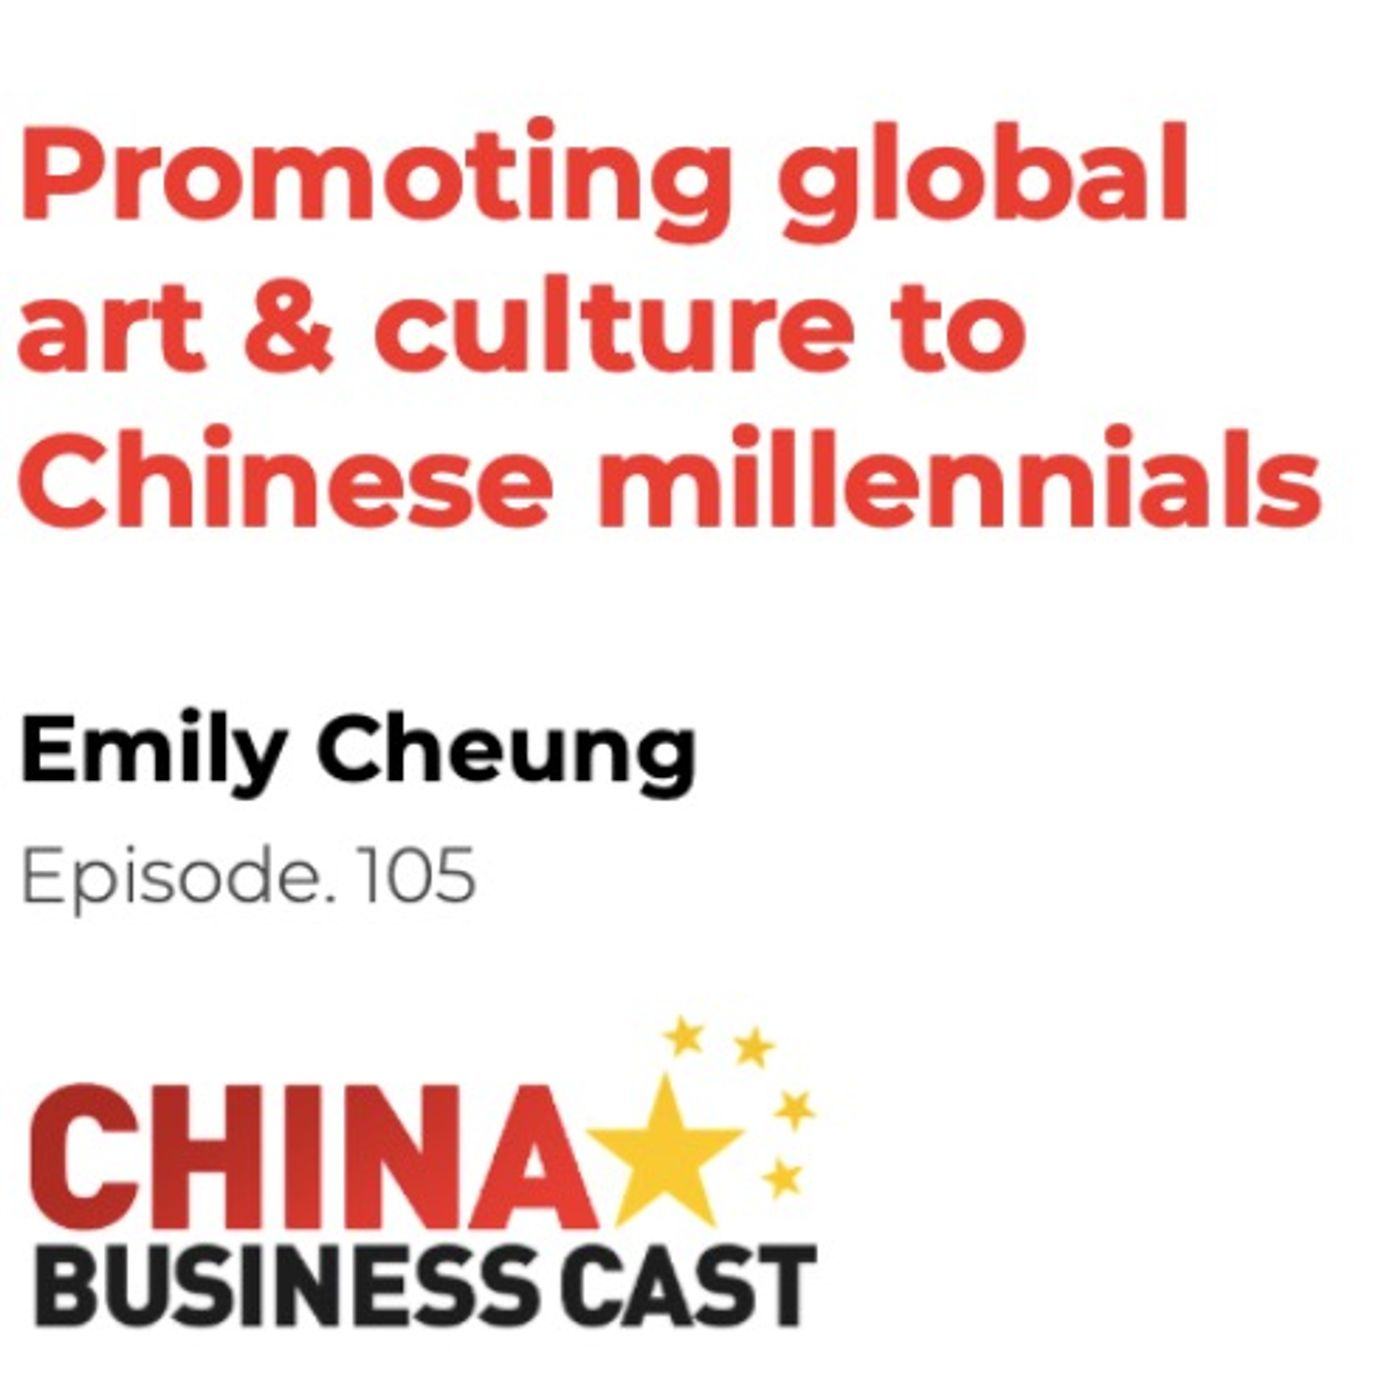 Ep. 105: Promoting global art & culture to Chinese millennials with Emily Cheung